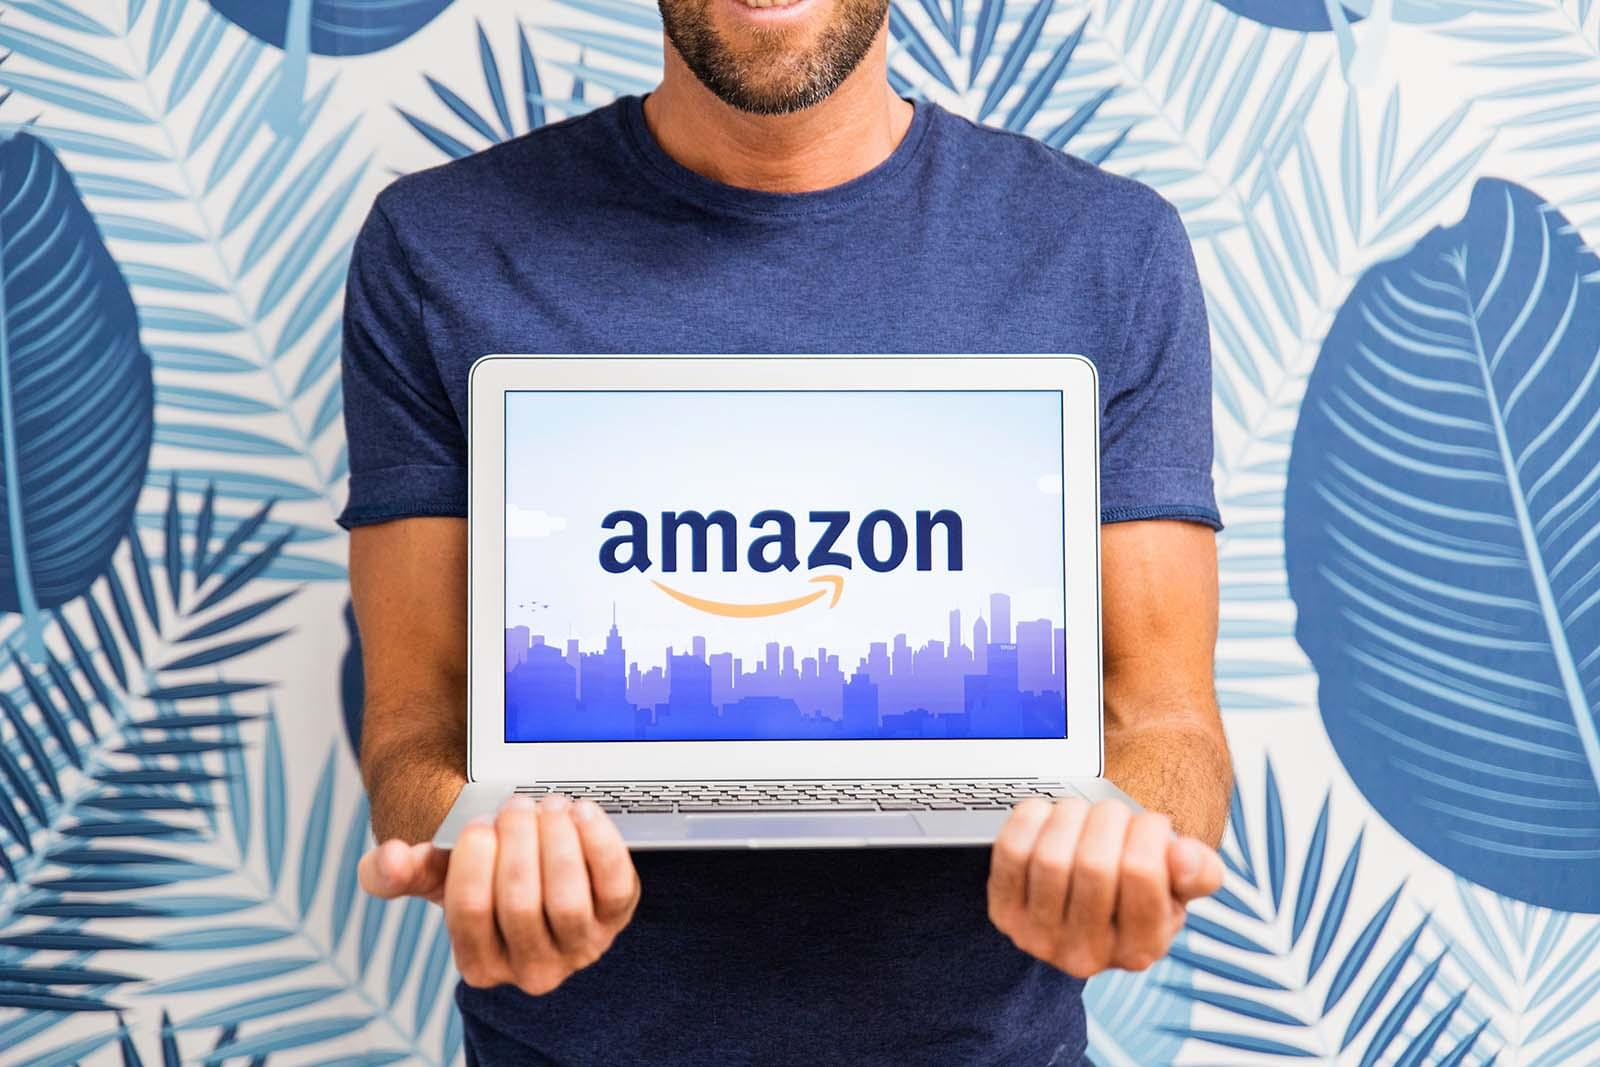 Amazon Listing Tool lets you sell directly from your online shop